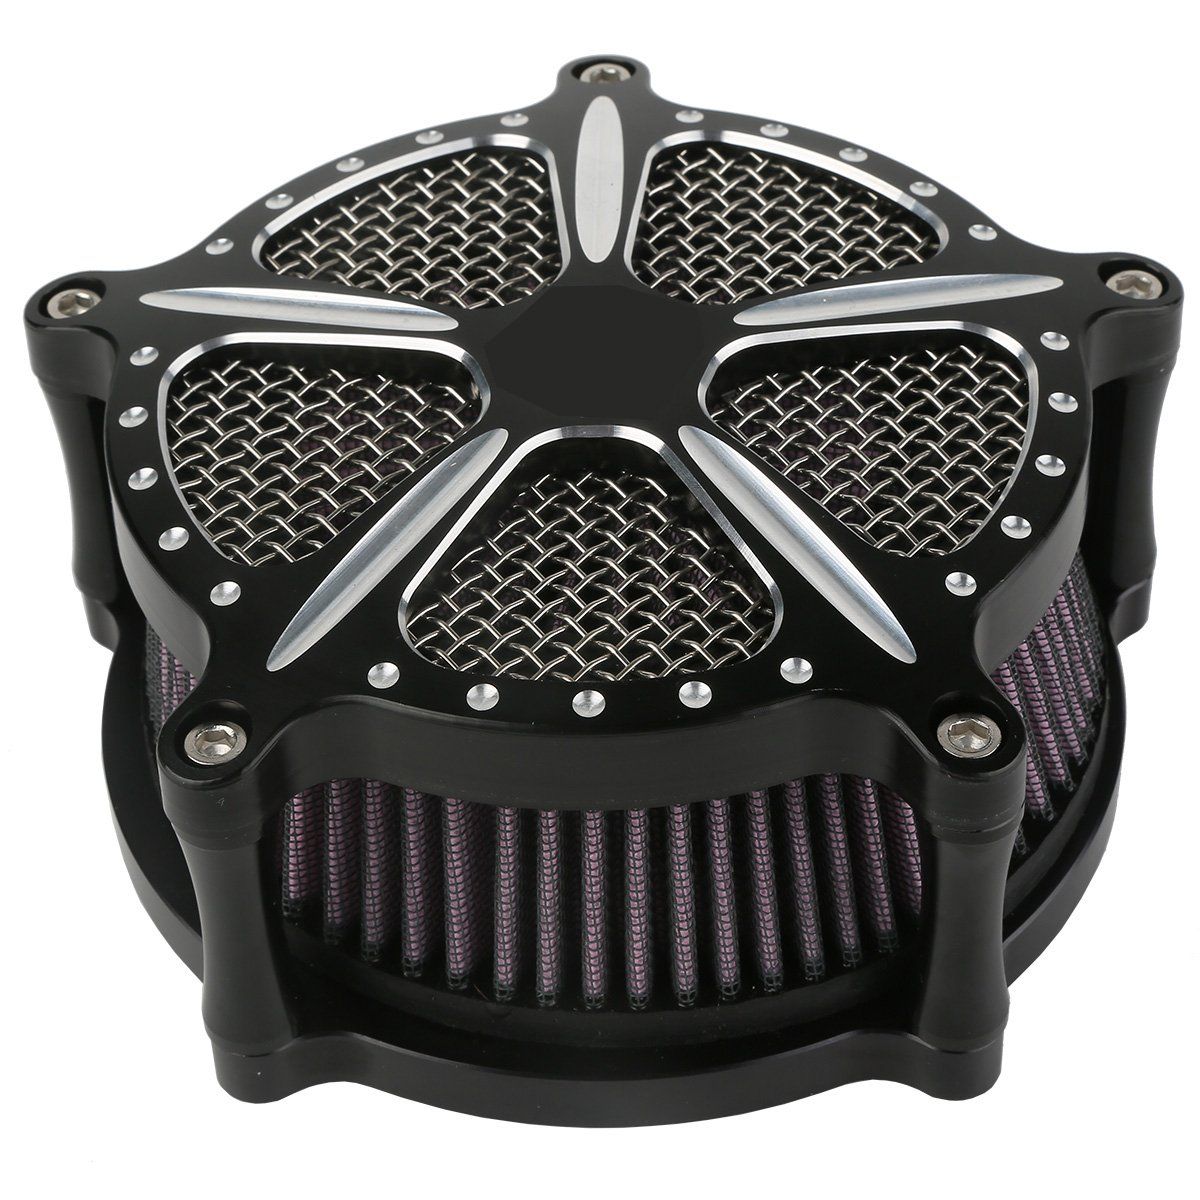 XMT-MOTO Speed-5 CNC Deep Cut Air Cleaner Filter For Harley Touring FLHR FLHT FLHX 2008-2016 by XMT-MOTO (Image #3)